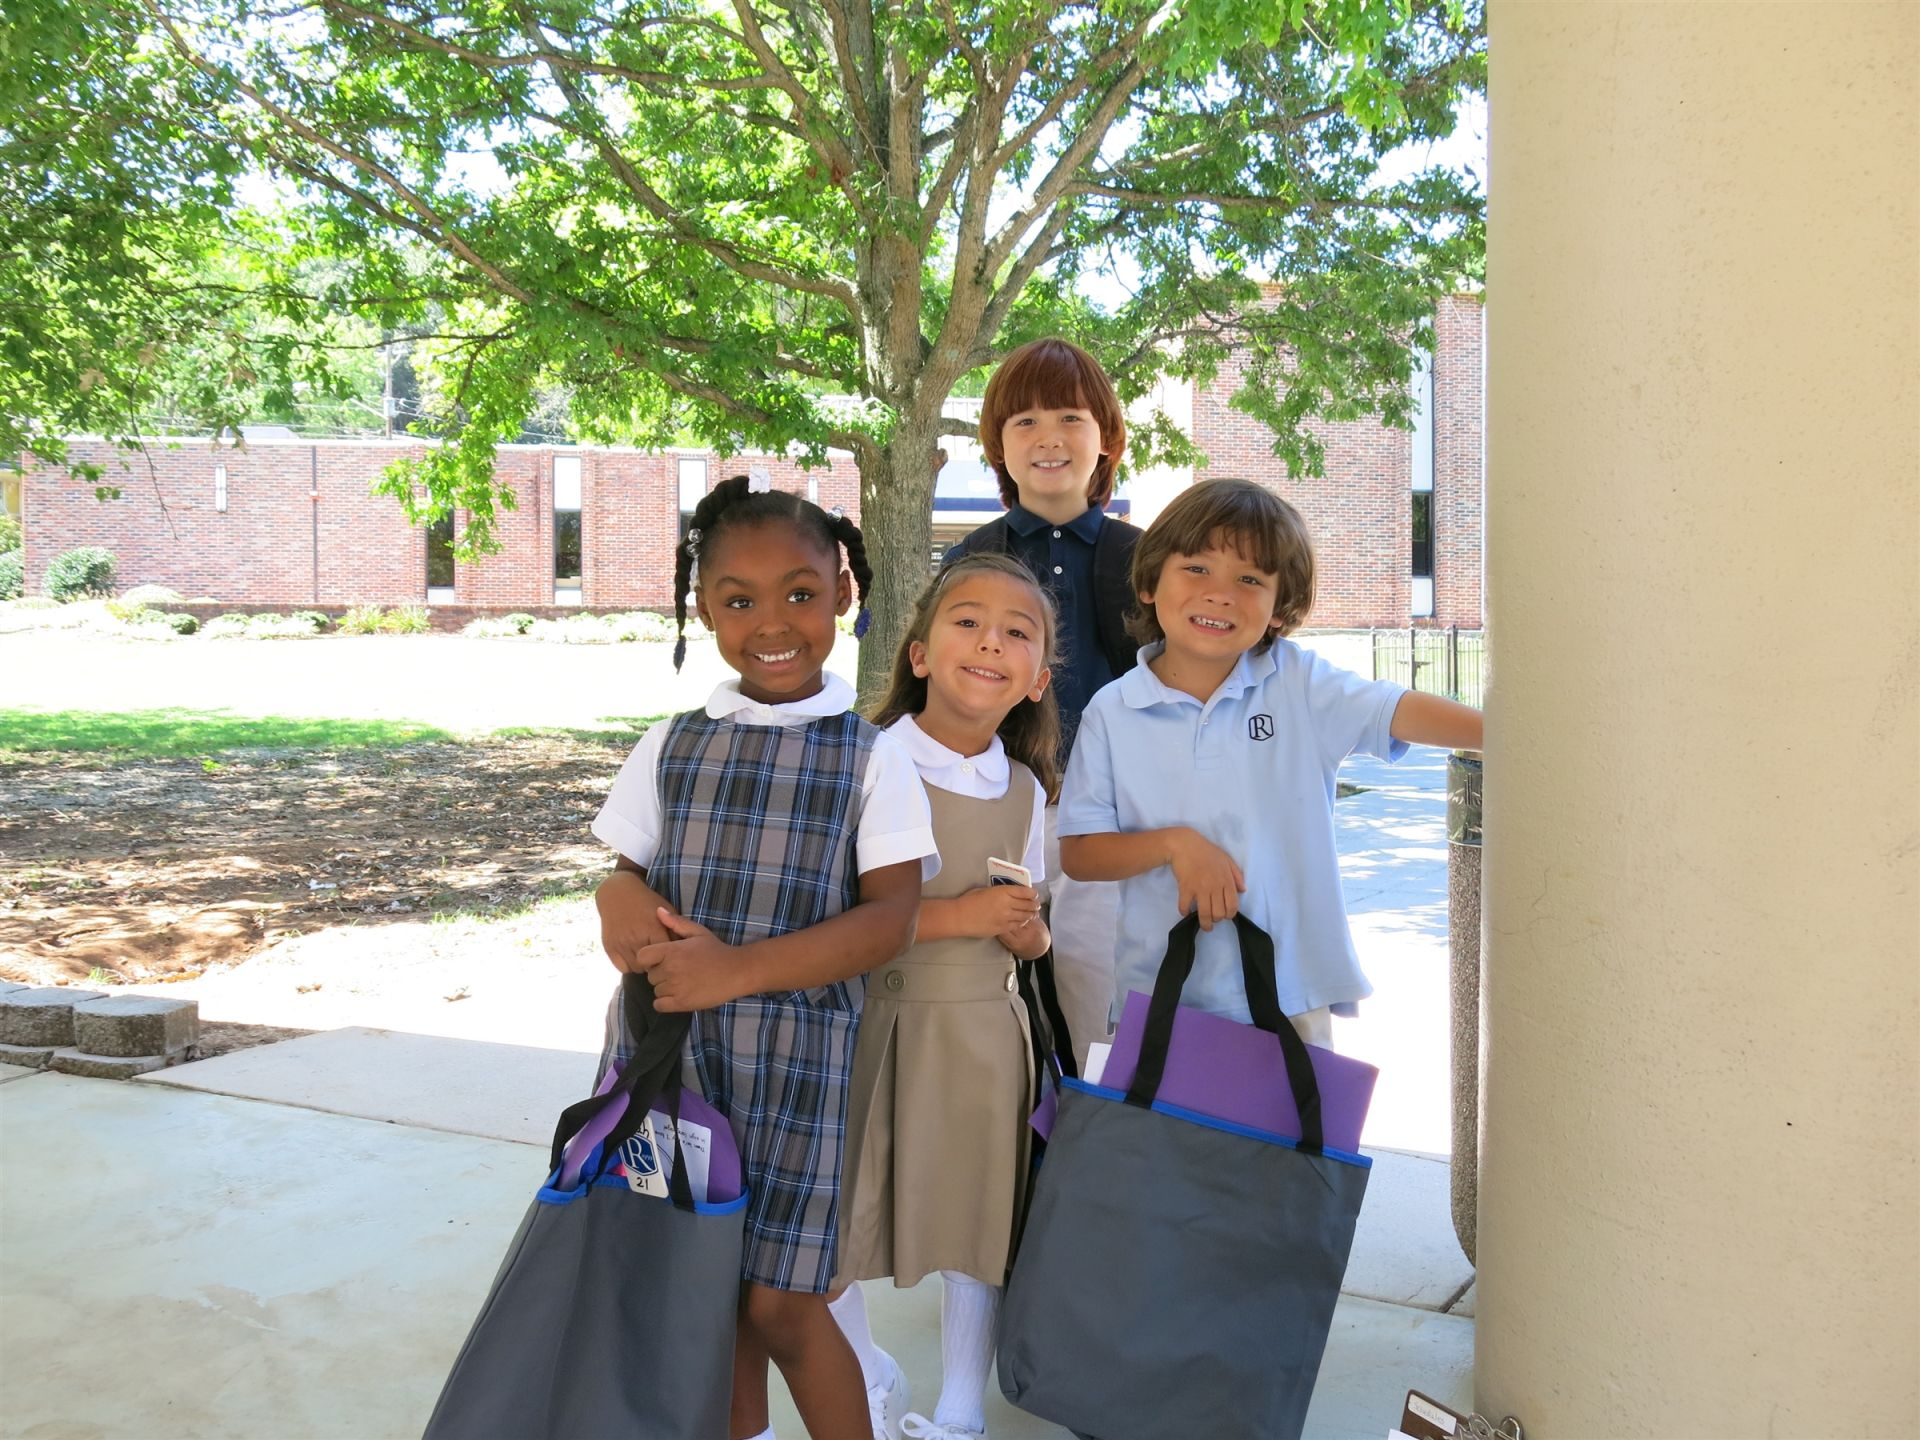 Lower School students on the first day of school.